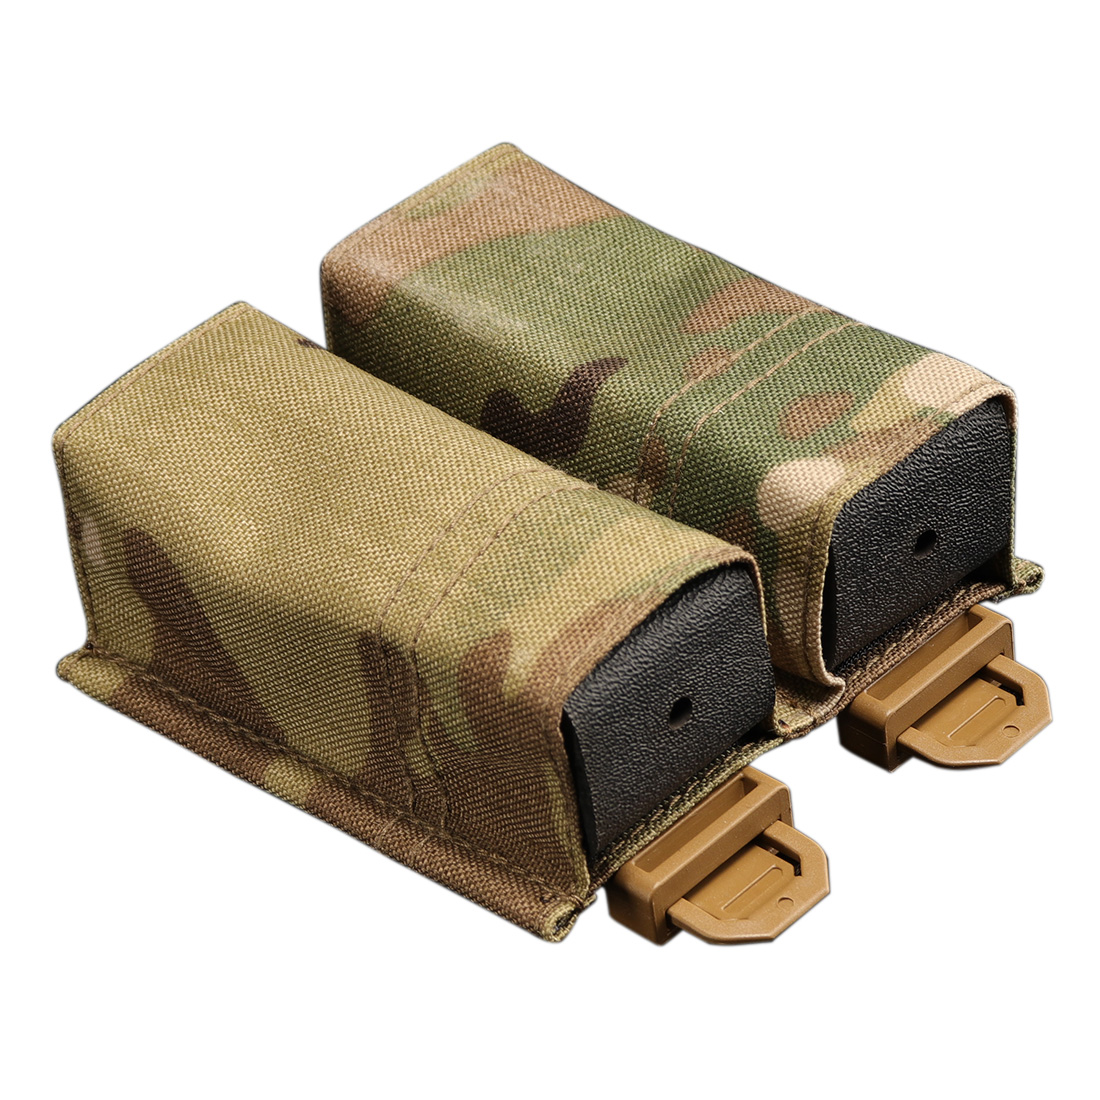 RELOADED AMMO/RA ESSTAC KYWI Type Tactical Quick Release Magazine Pouch - MC 9mm Double Magazine